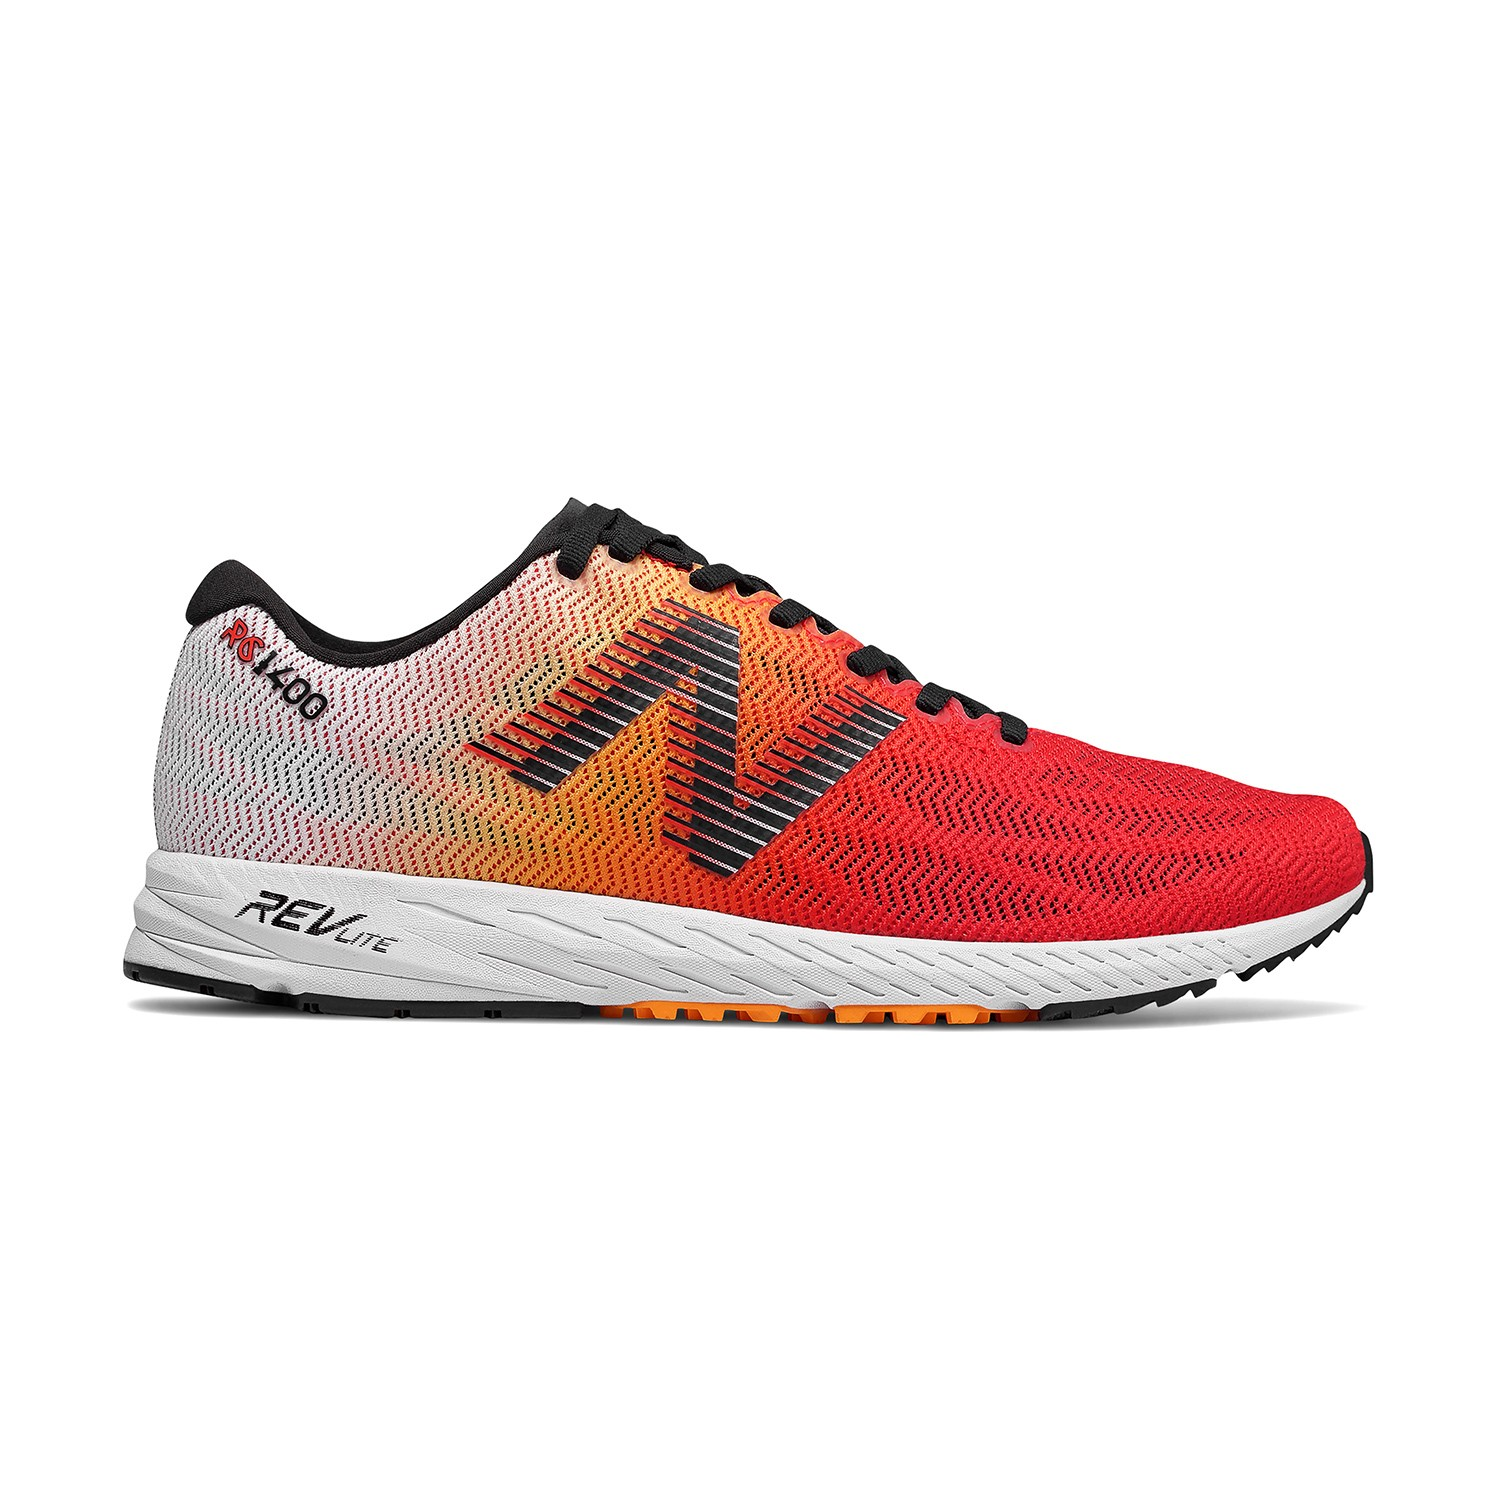 New Balance 1400v6 Running Shoe